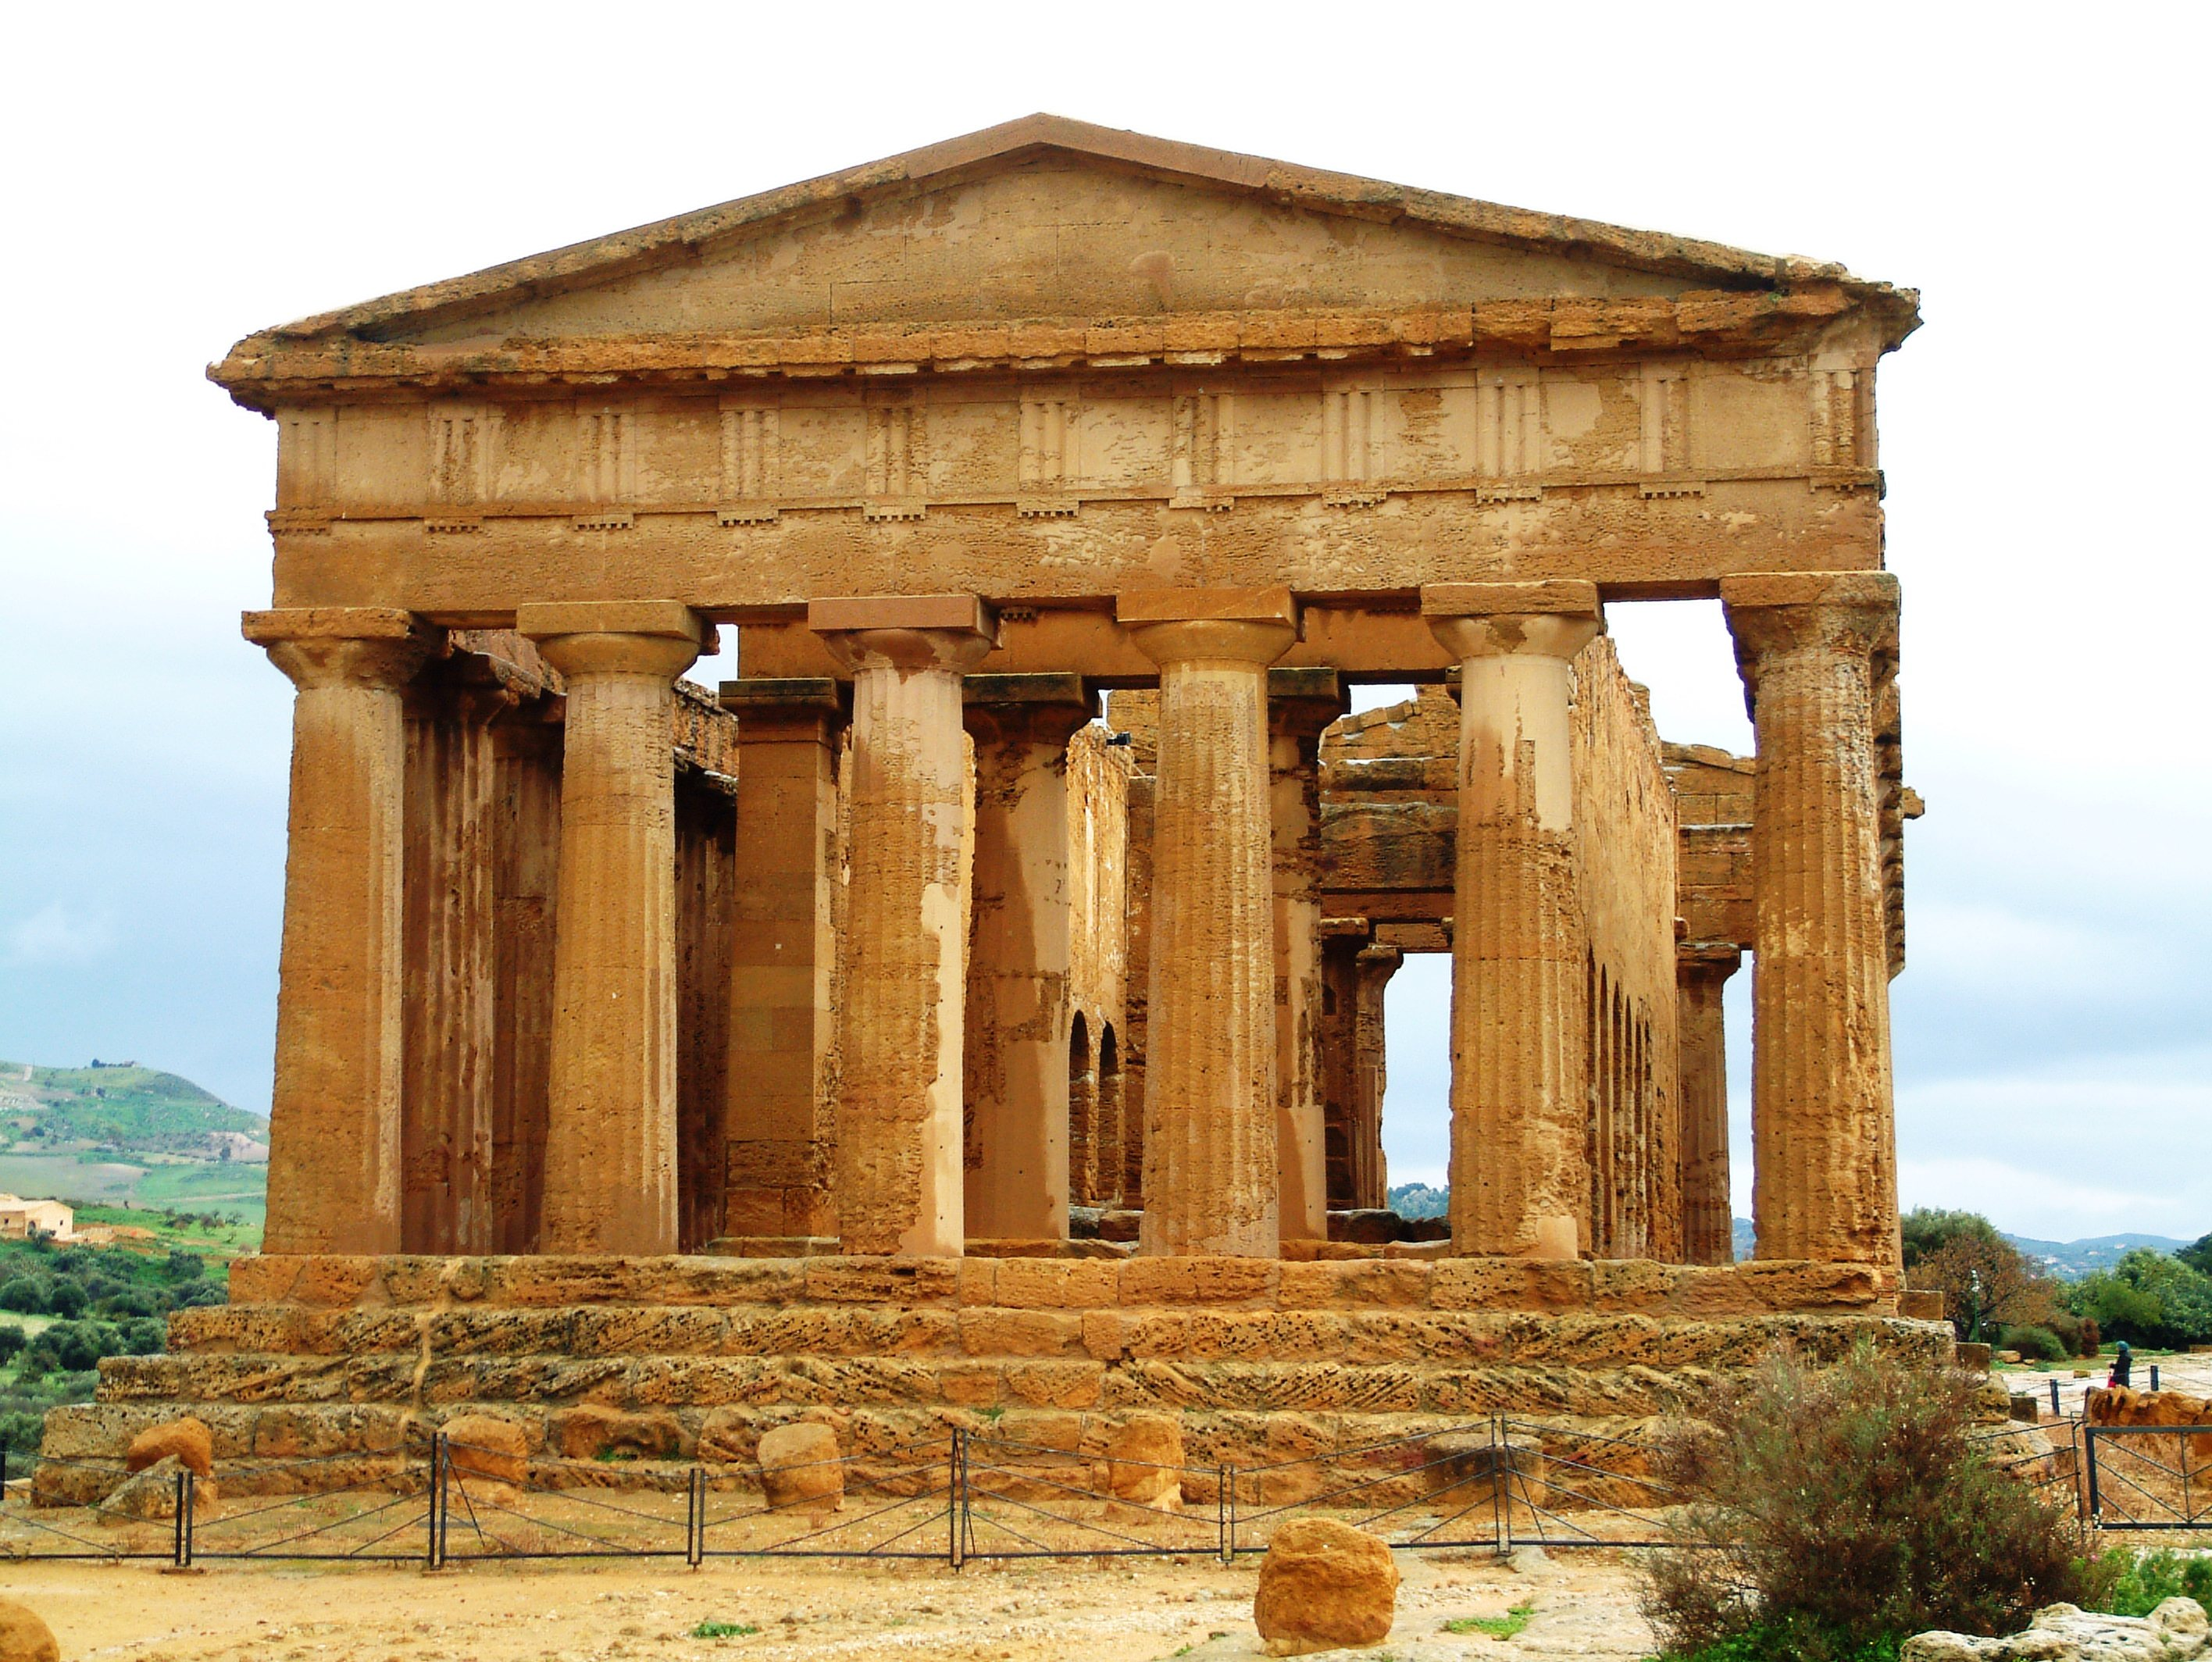 Agrigento – Travel guide at Wikivoyage